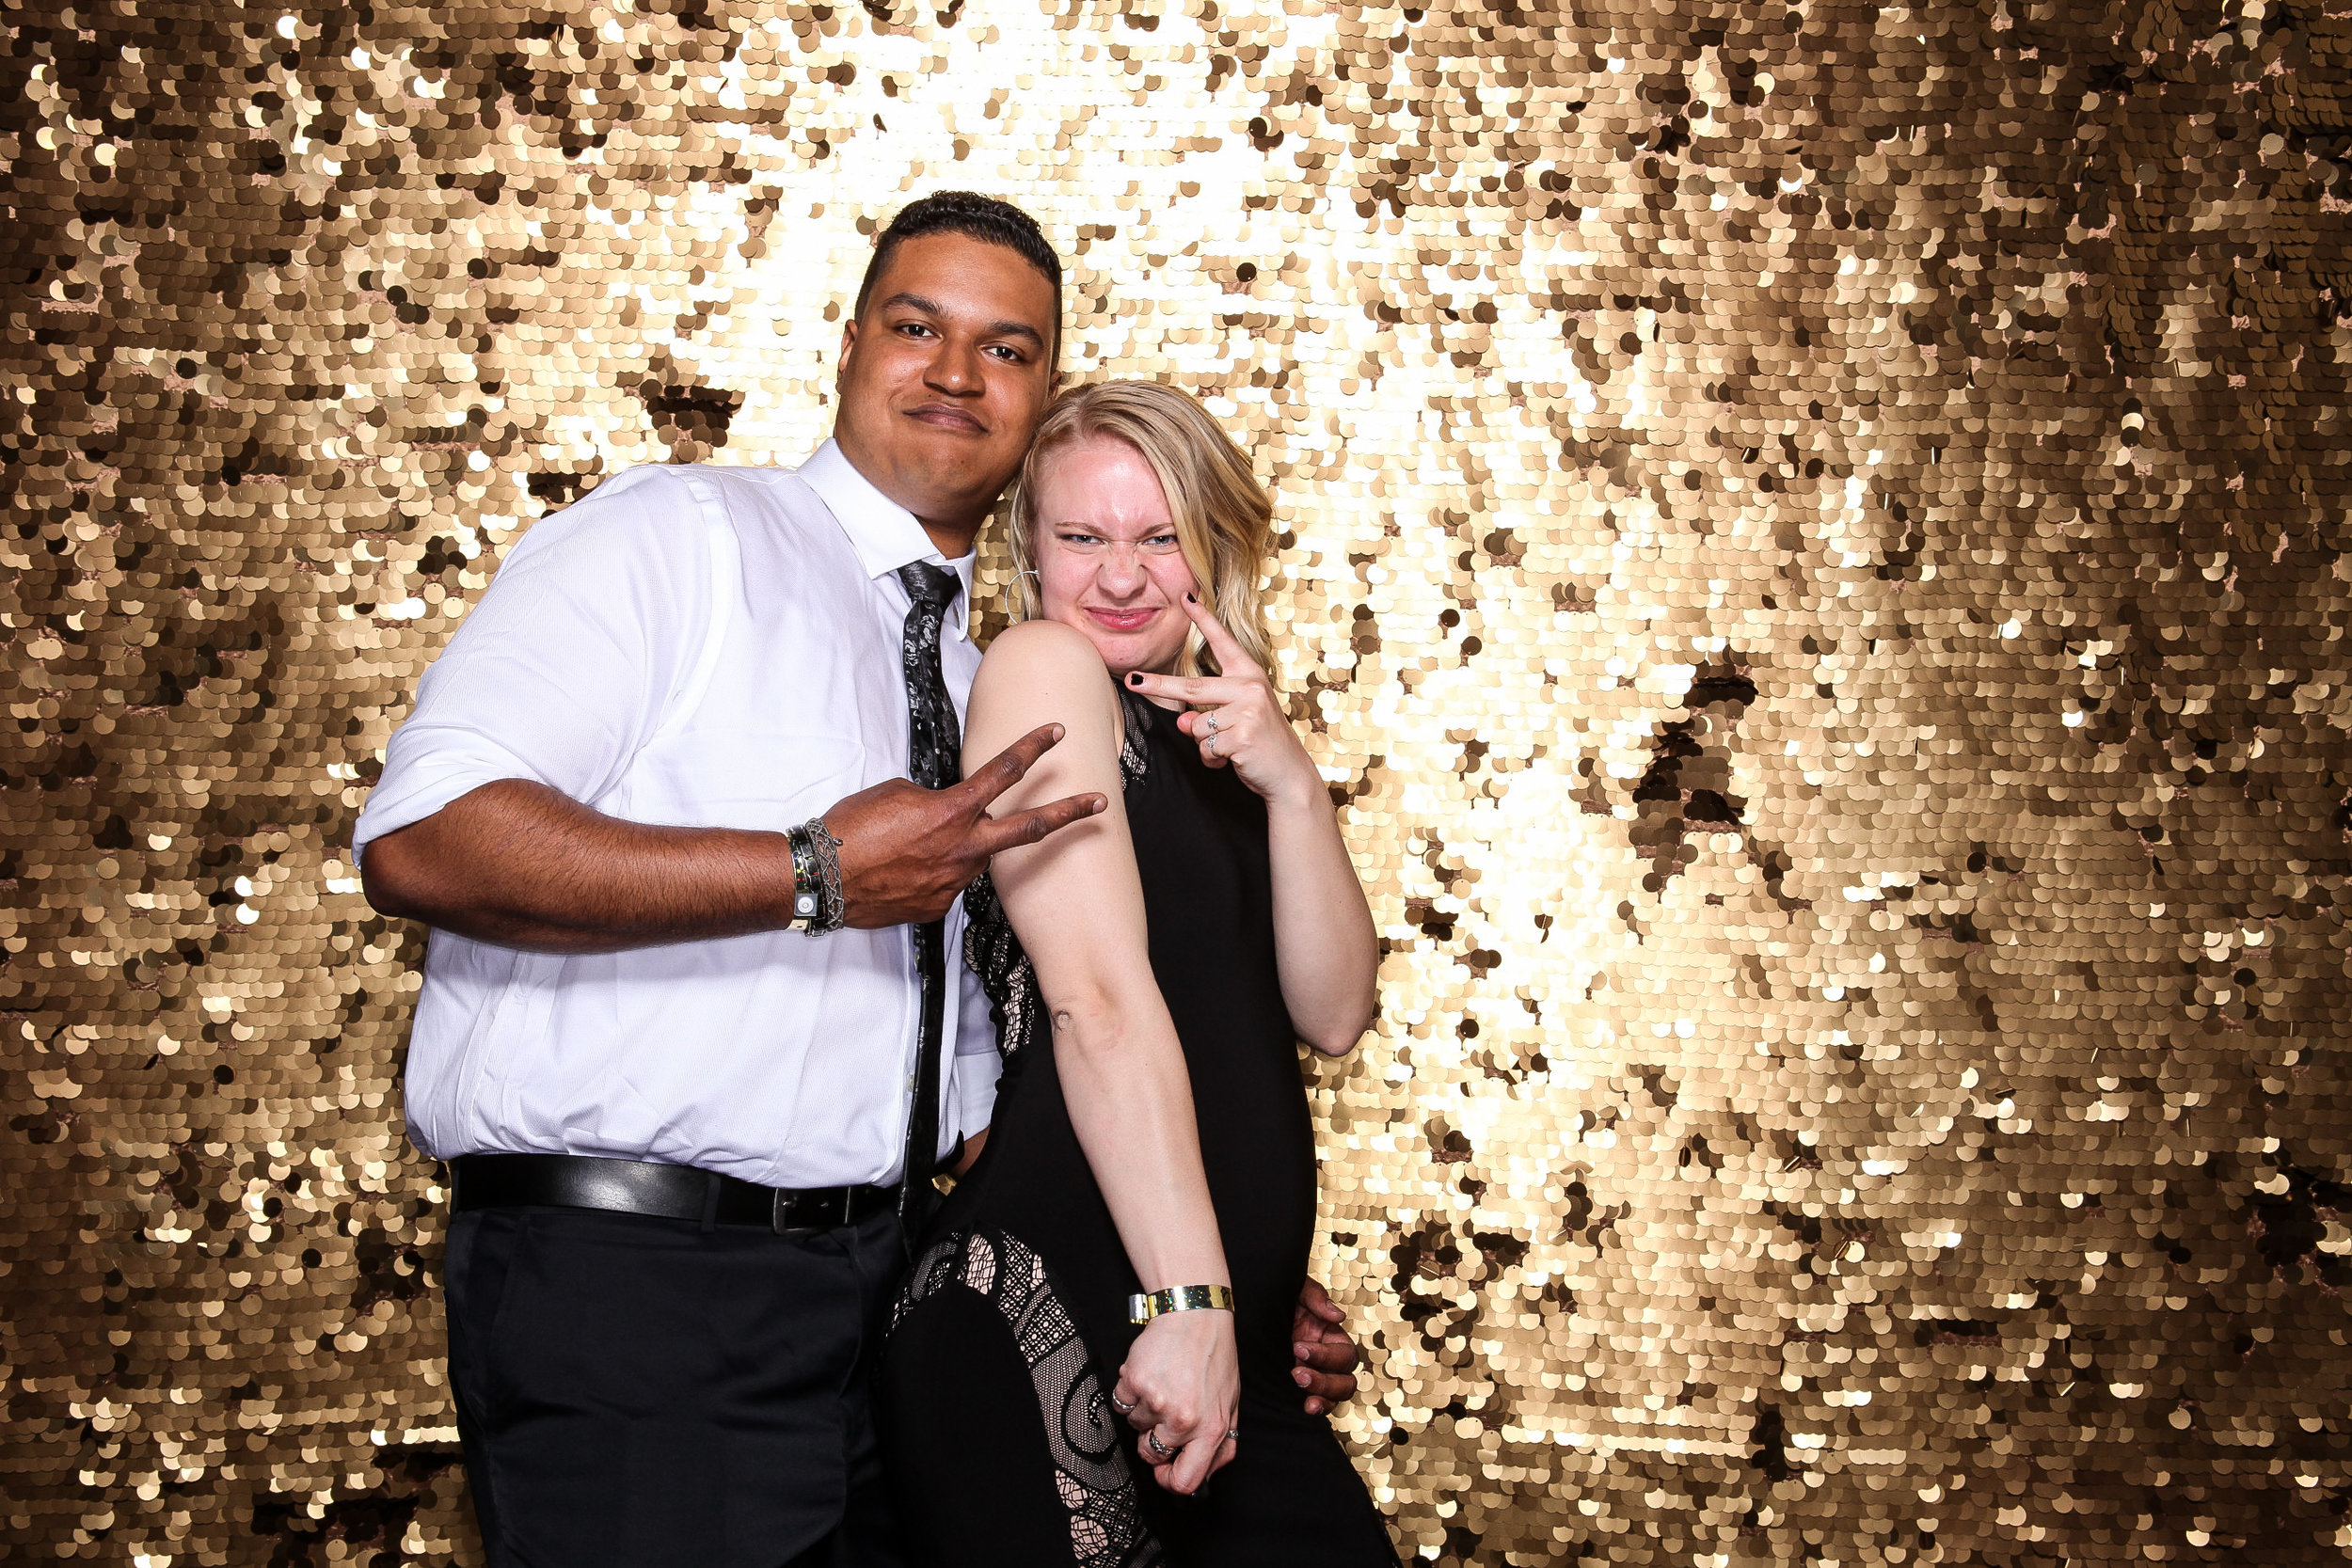 20190503_Adelphi_Senior_Formal-228.jpg